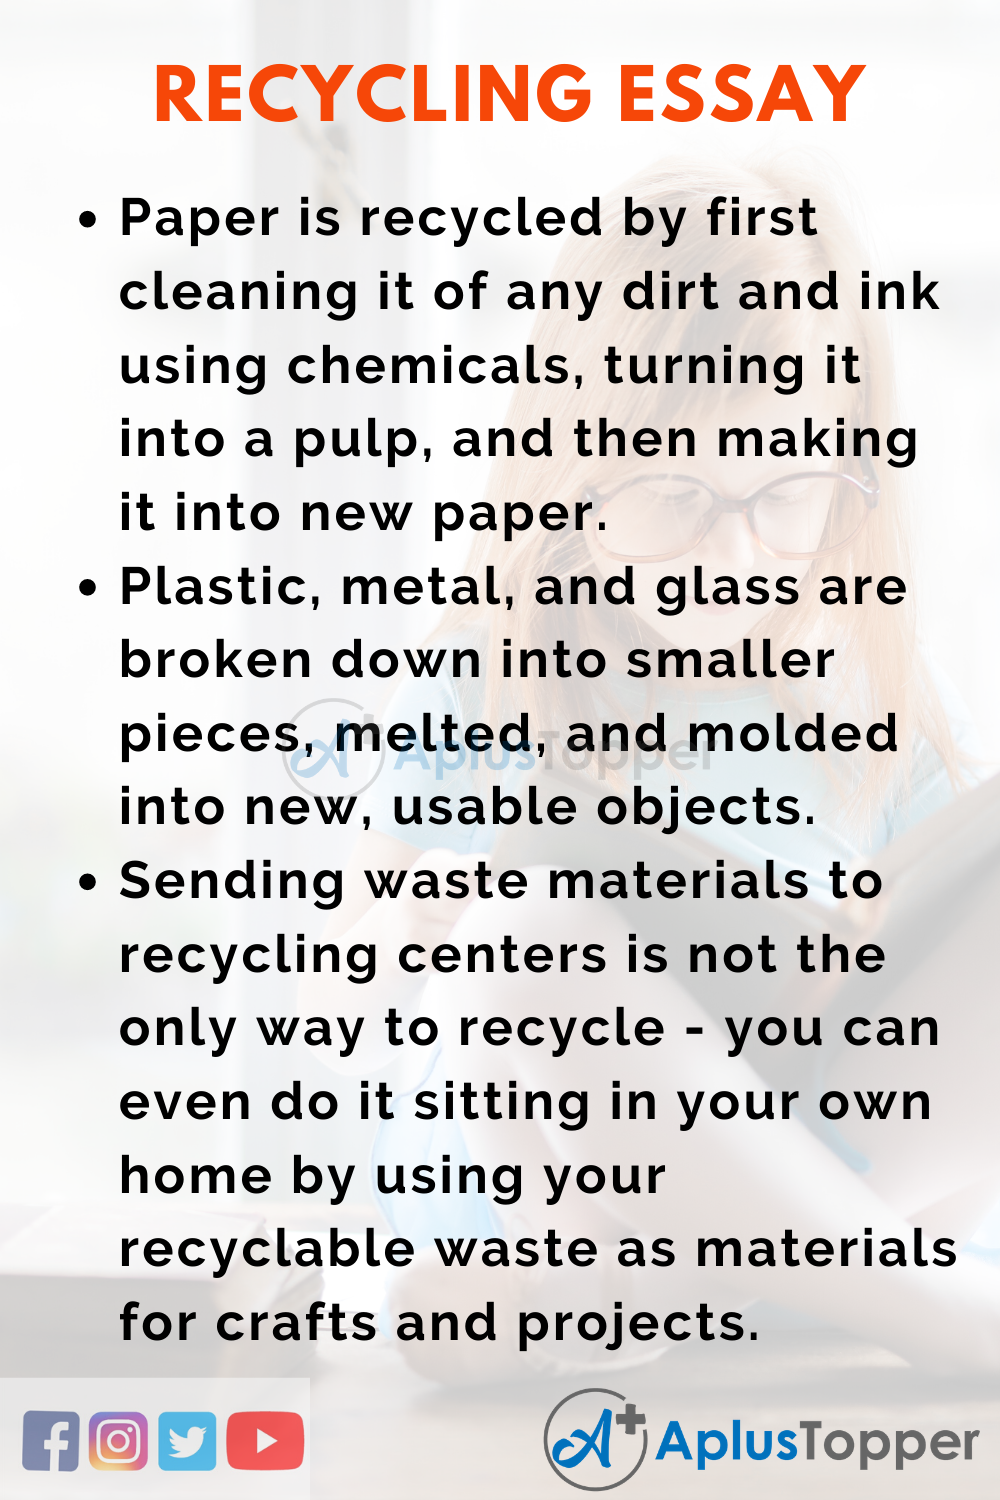 Essay About Recycling